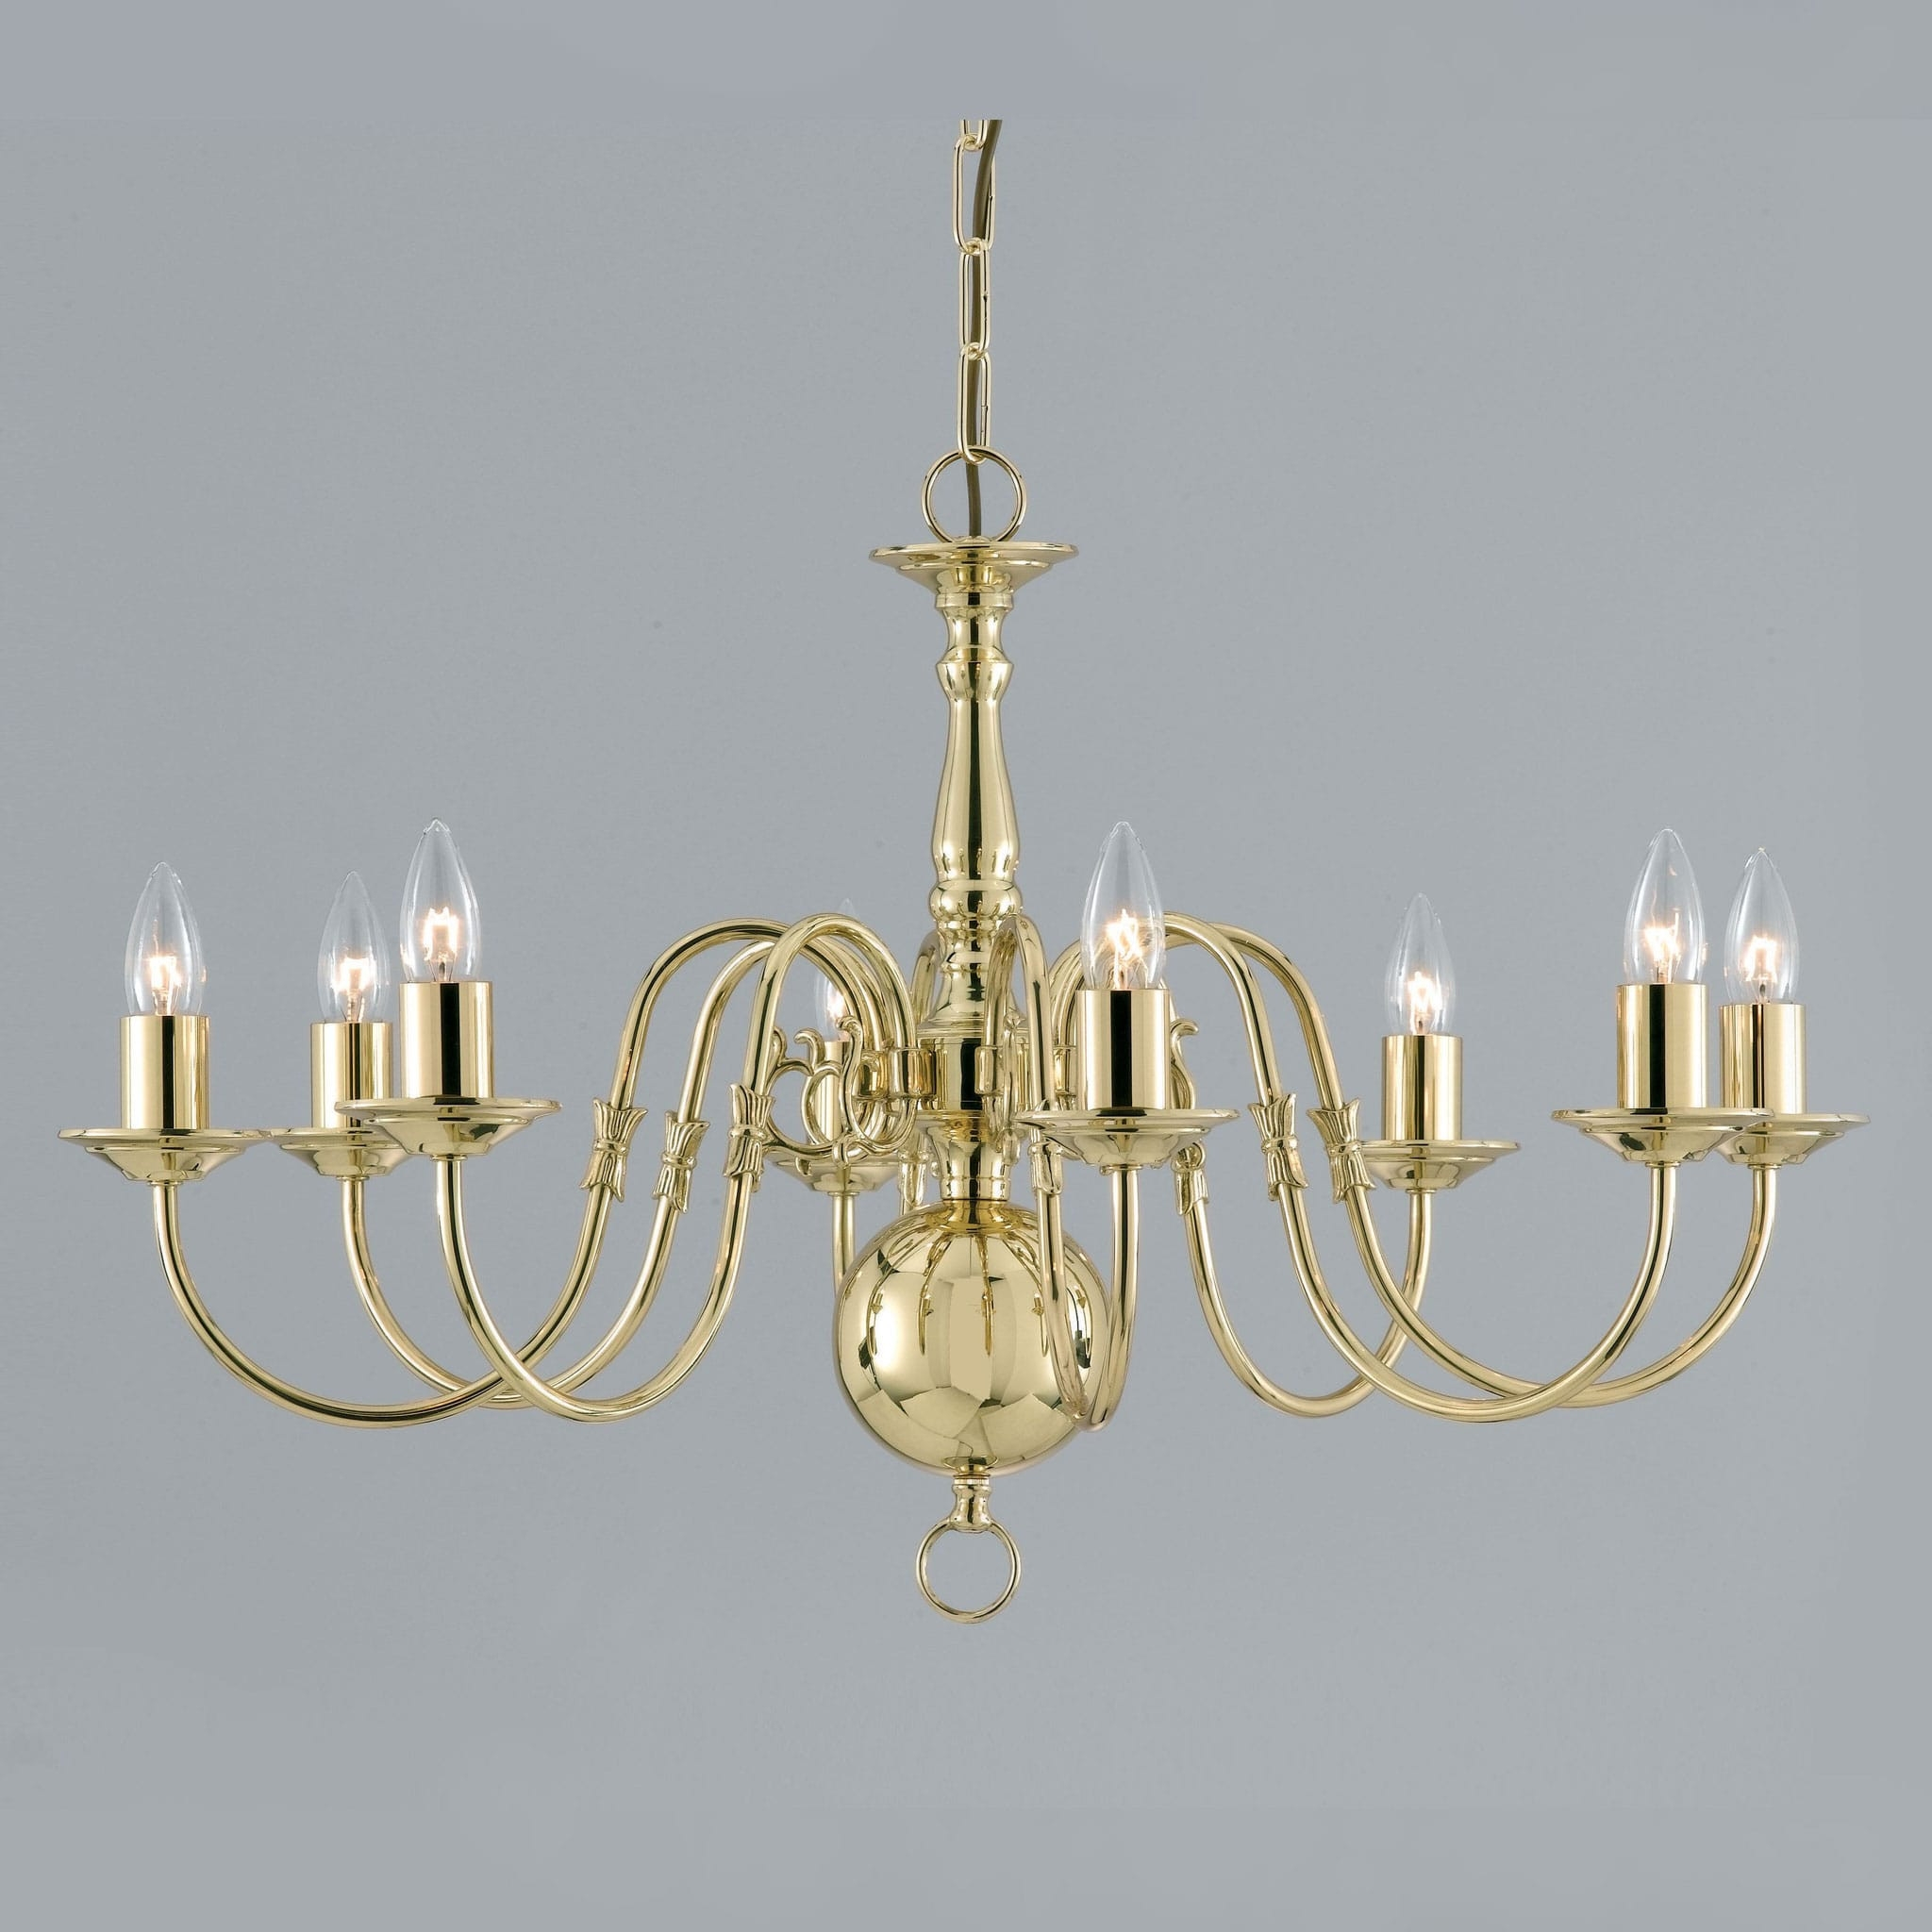 Chandelier Lighting Amazing Gold Chandelier Light N Ycvzcozzwys In Flemish Brass Chandeliers (Image 11 of 25)